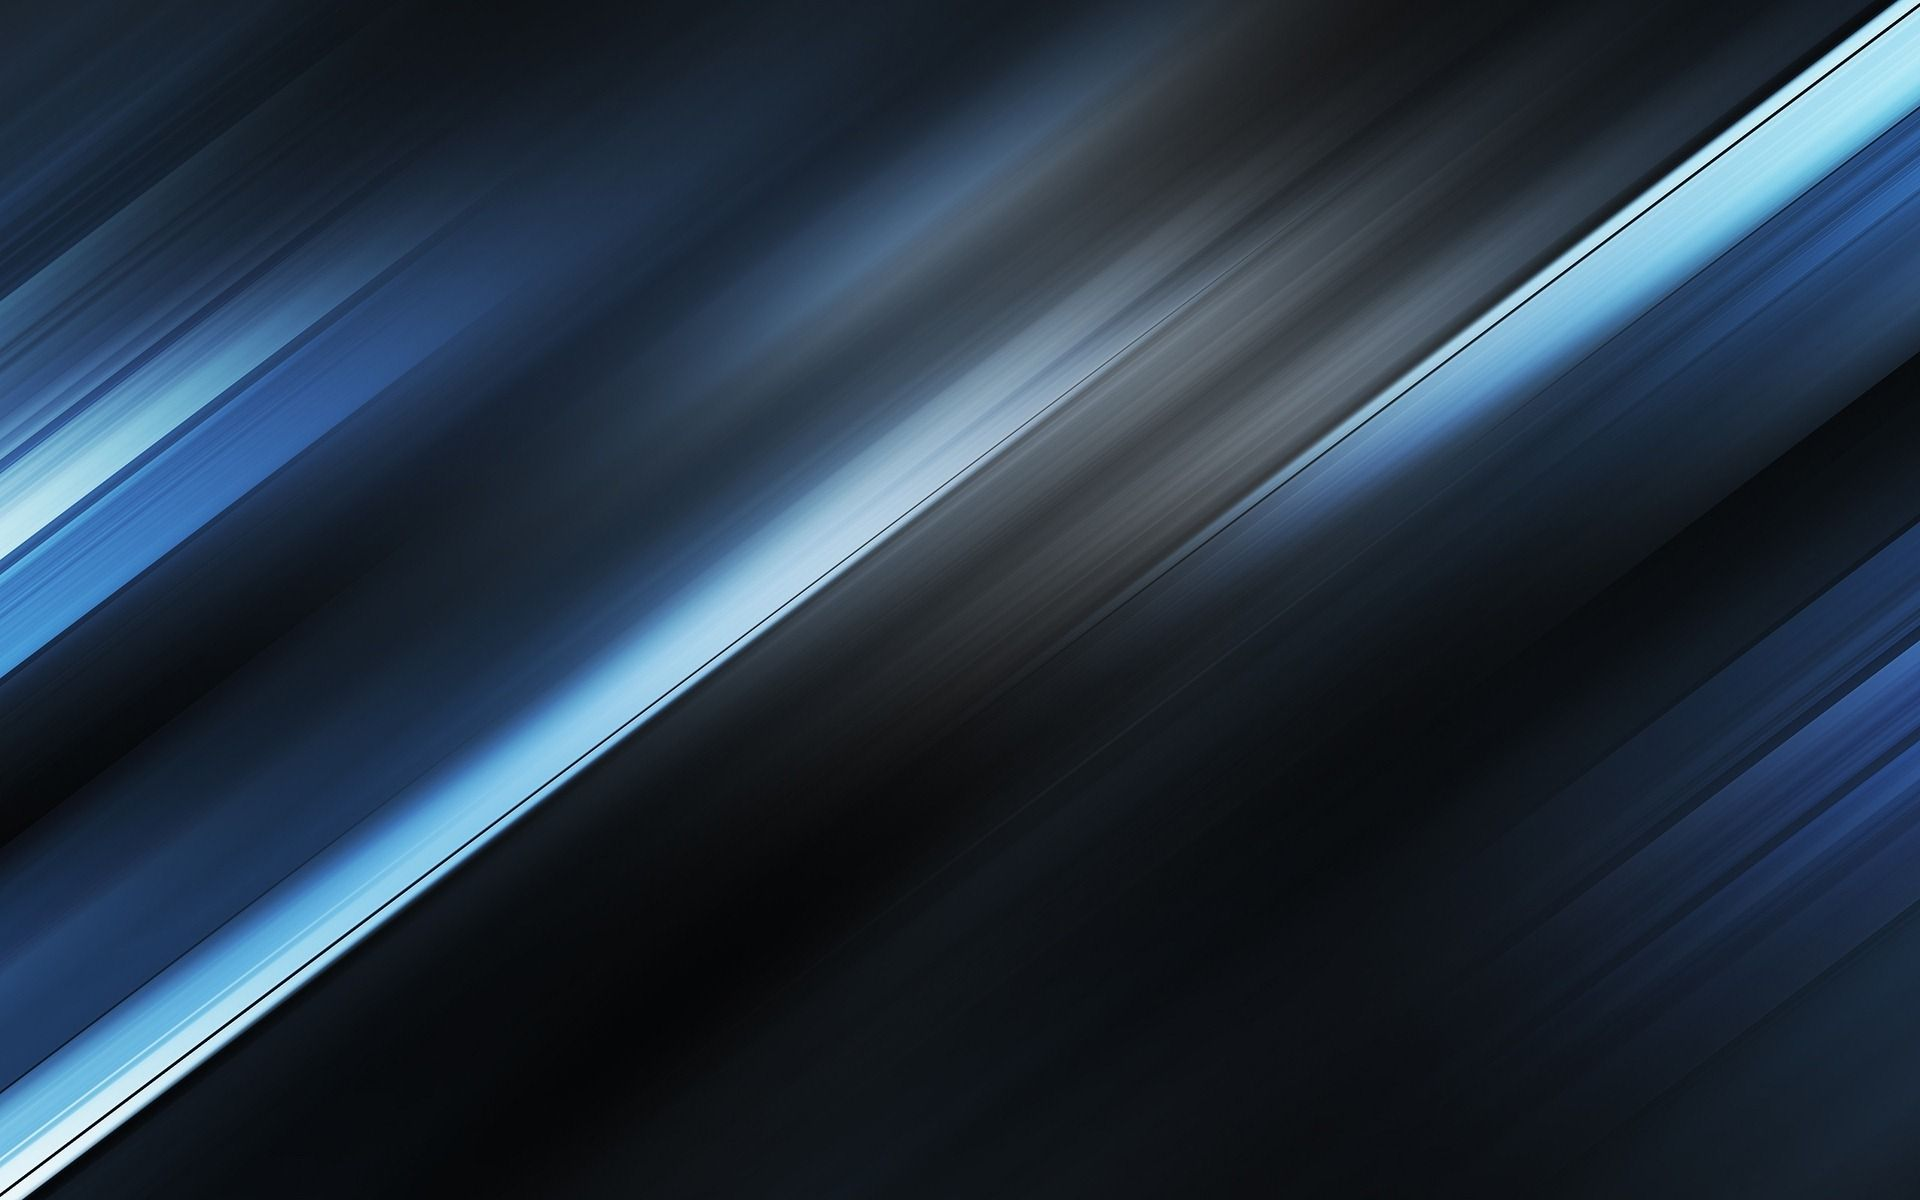 Abstract Desktop Wallpapers Top Free Abstract Desktop